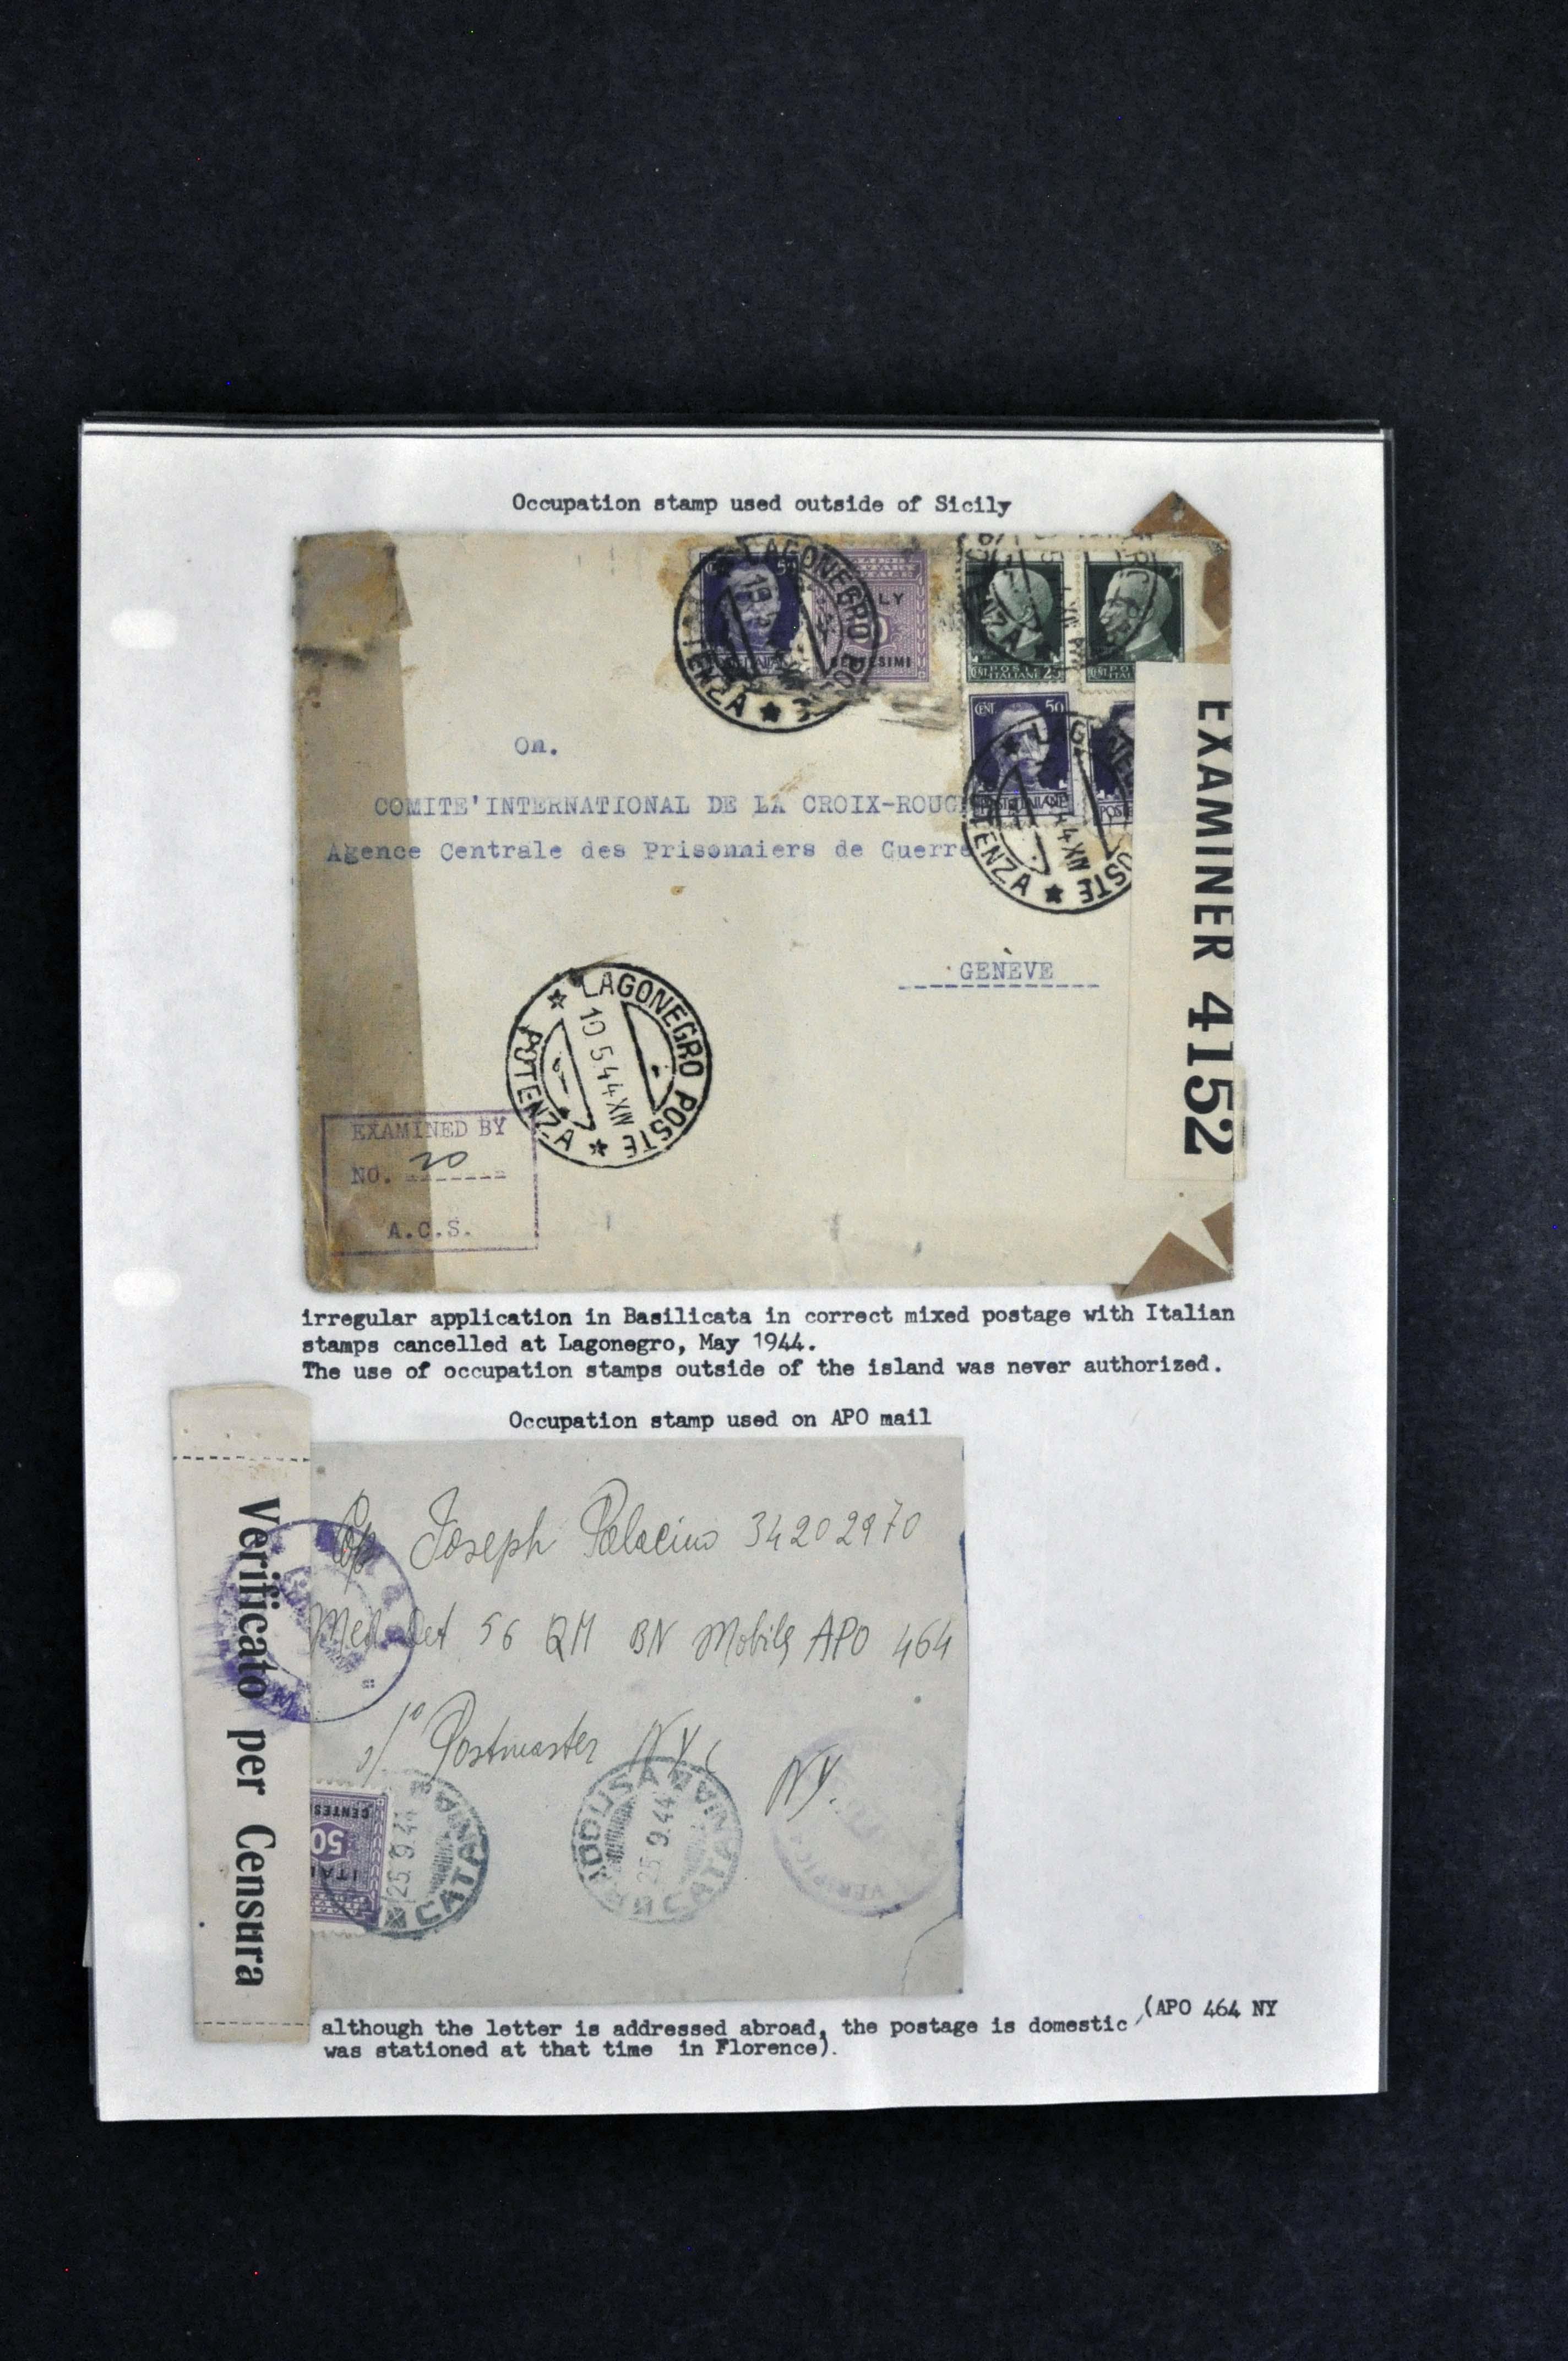 postmarks auxiliary markings censor handstamps and tapes sol rs mail mixed frankings etc generally F VF a terrific collection of these with